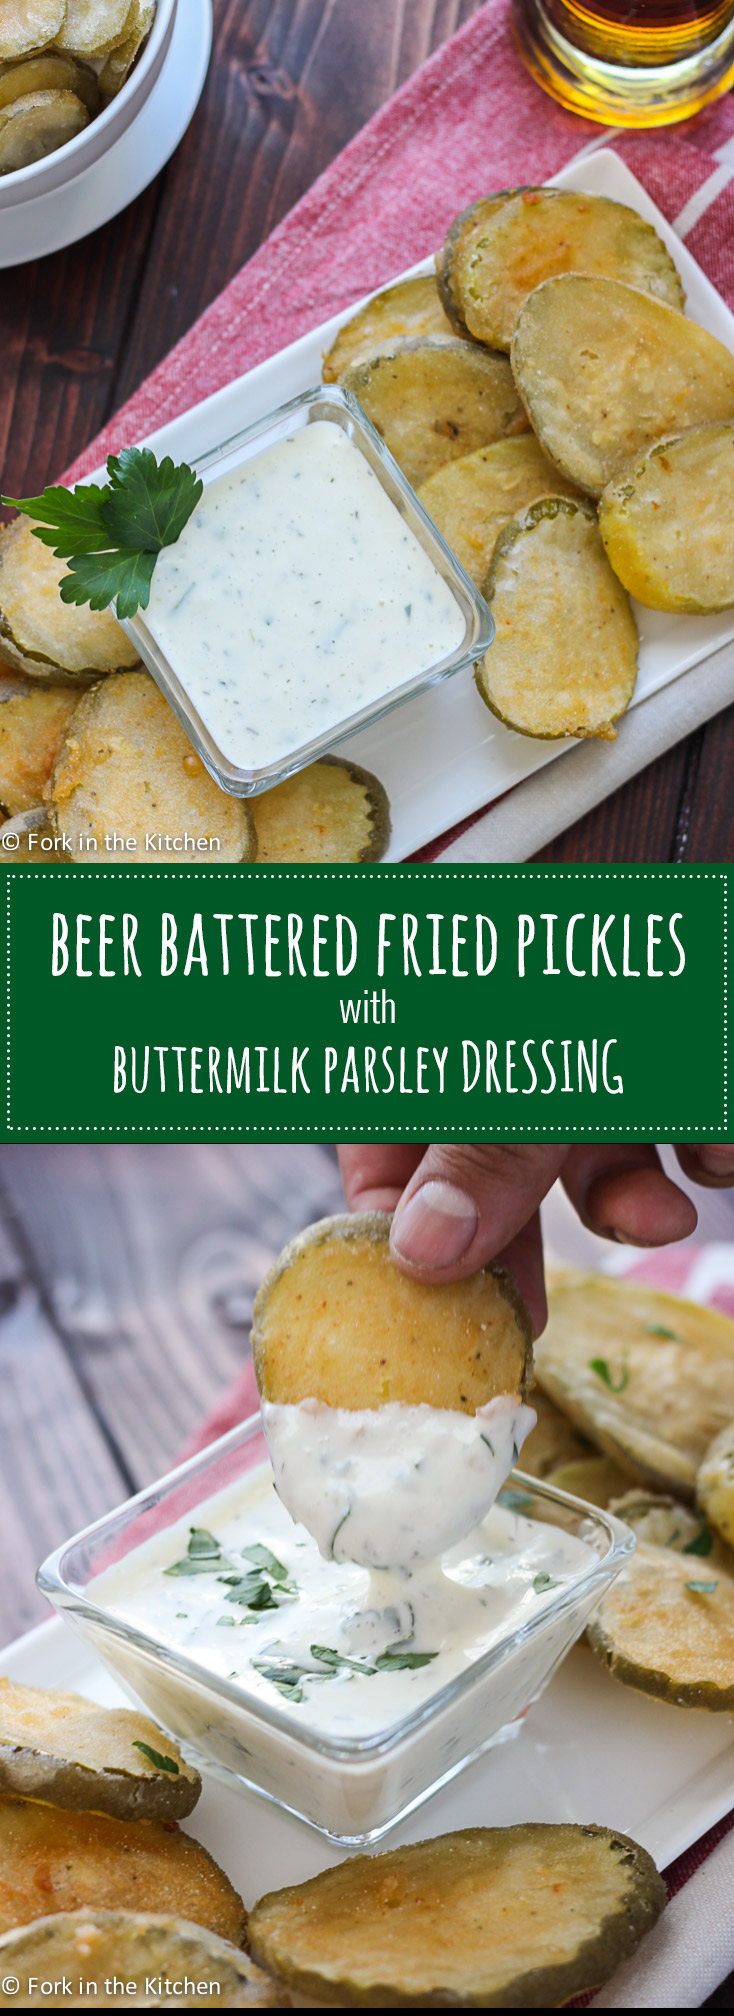 Beer Battered Fried Pickles - crunchy, salty, dill pickles dipped in a light, crisp beer batter coating and fried to perfection. Serve them with a buttermilk parsley dressing for a tasty snack! // Fork in the Kitchen